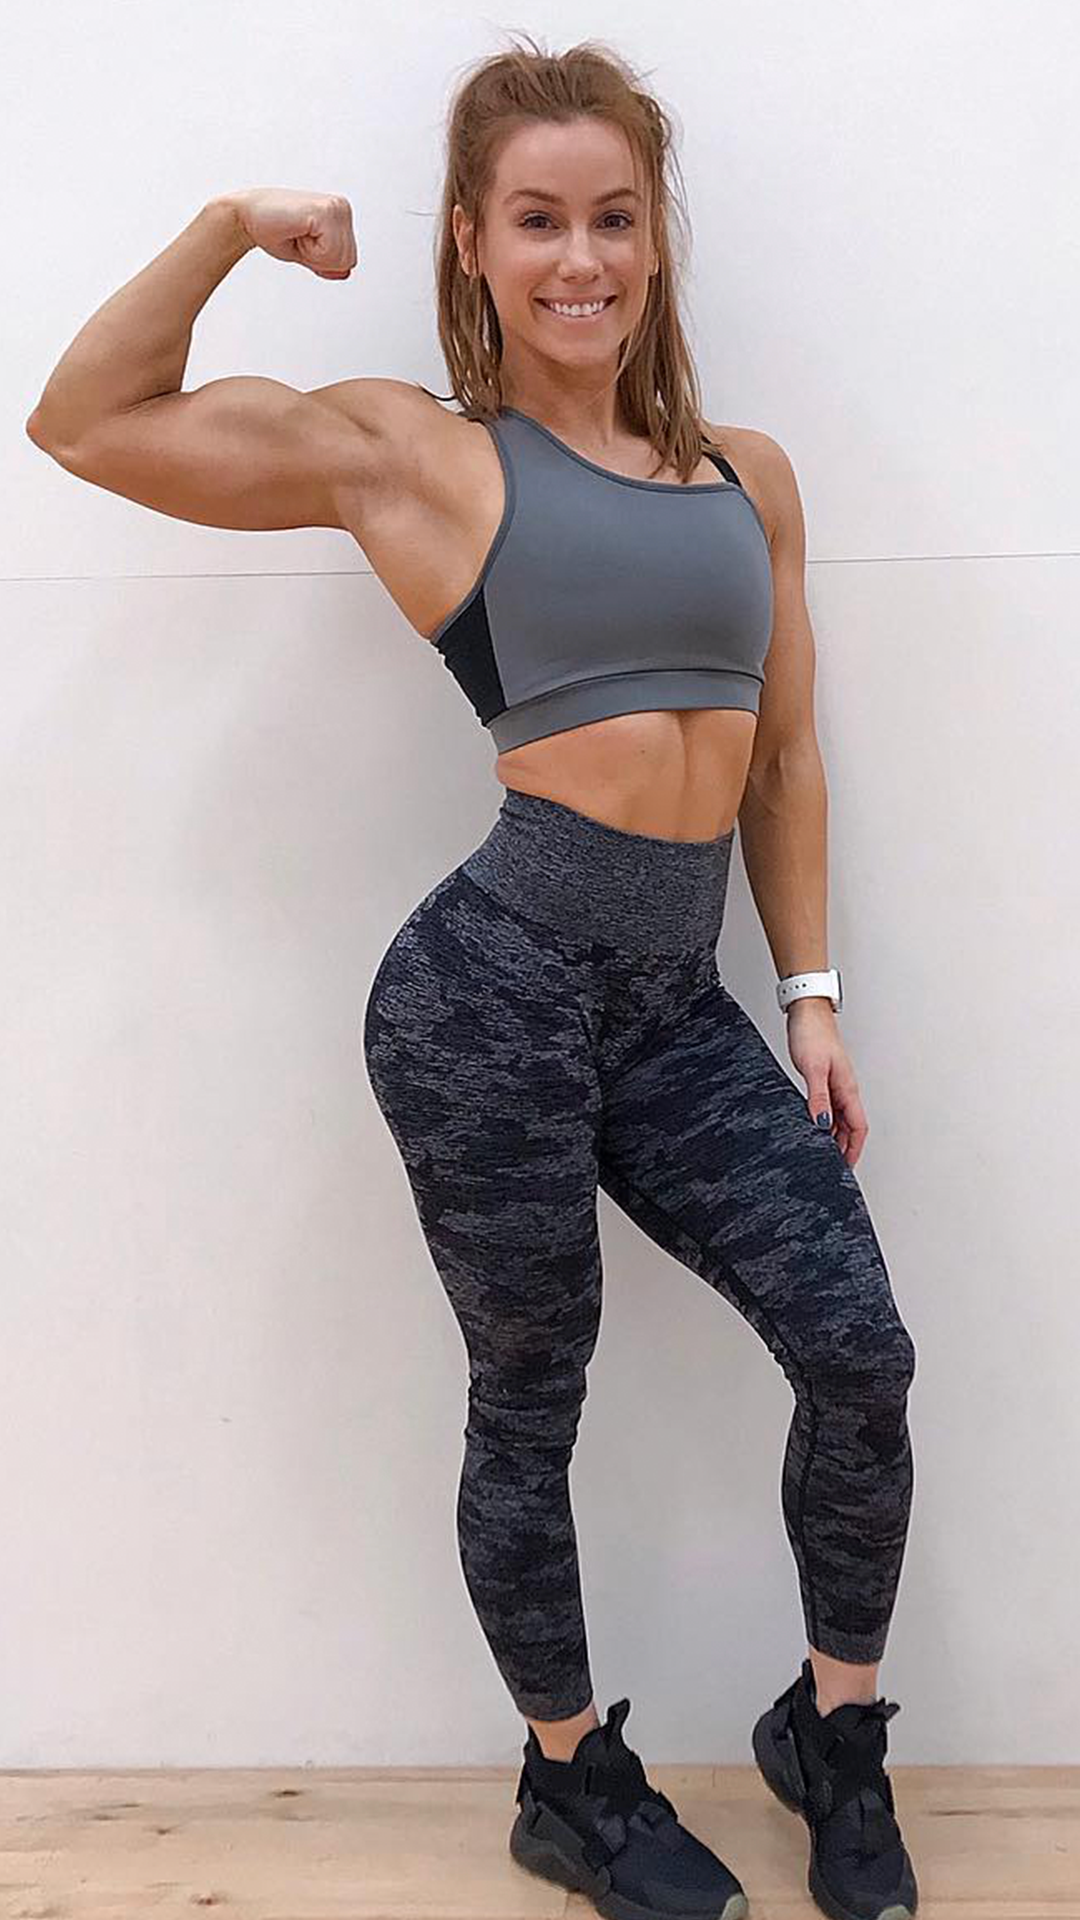 352e832aa68b88 Lauren Findley, Gymshark Athlete mixes and matches the Camo Seamless  Leggings with the Asymmetric Sports Bra. A cool, contemporary look for your  workouts!